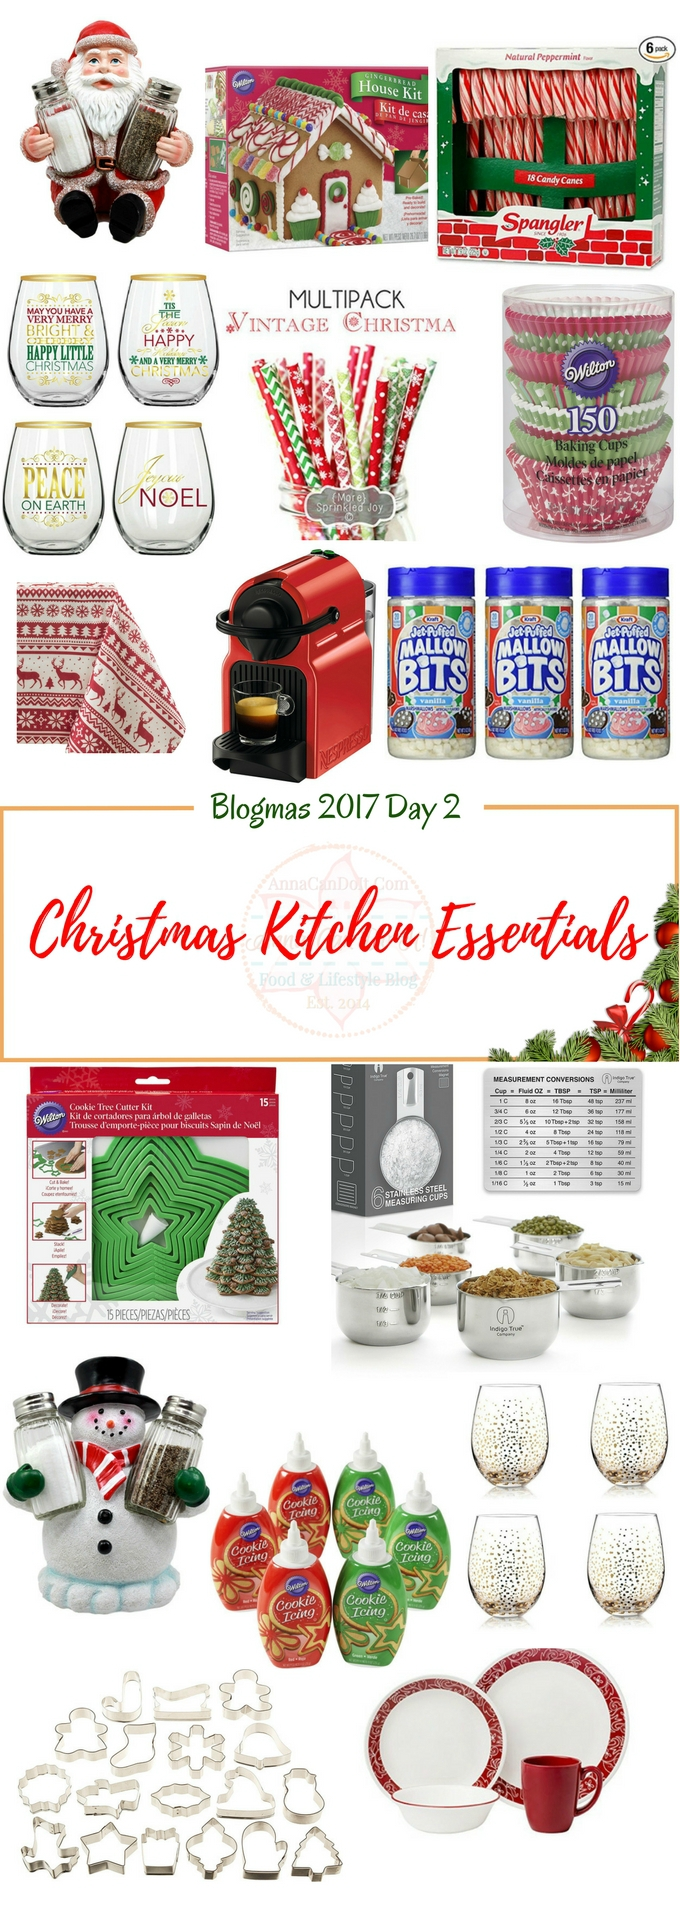 Christmas Kitchen Essentials - Blogmas 2017 Day 2 - Anna Can Do It!